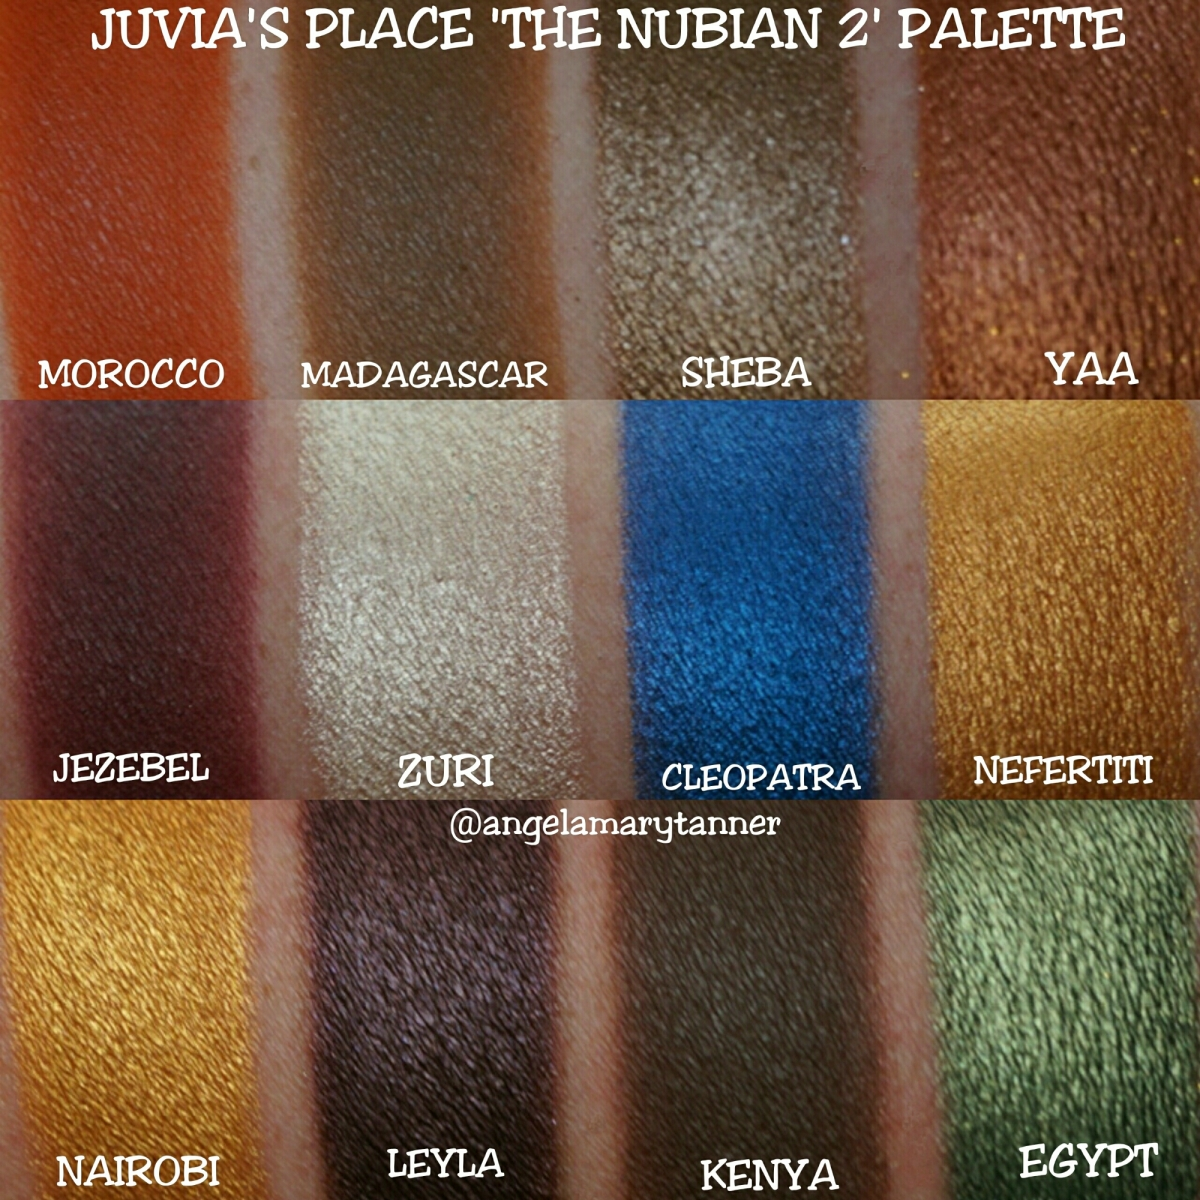 Juvia S Place The Nubian 2 Palette Review Swatches And Discount Code Our Beauty Cult